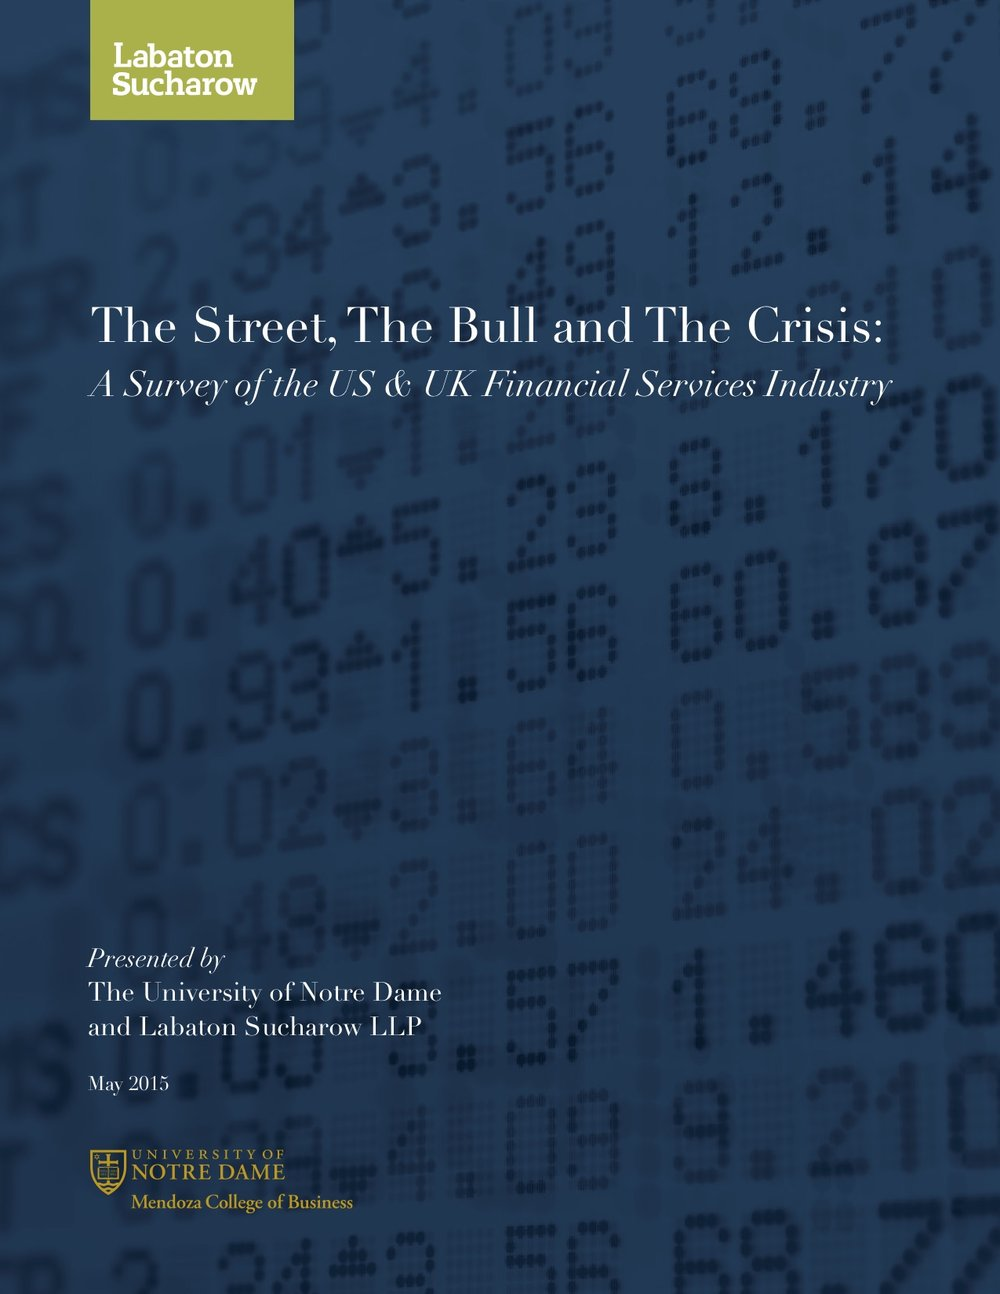 The Street the Bull cover Photo.jpg